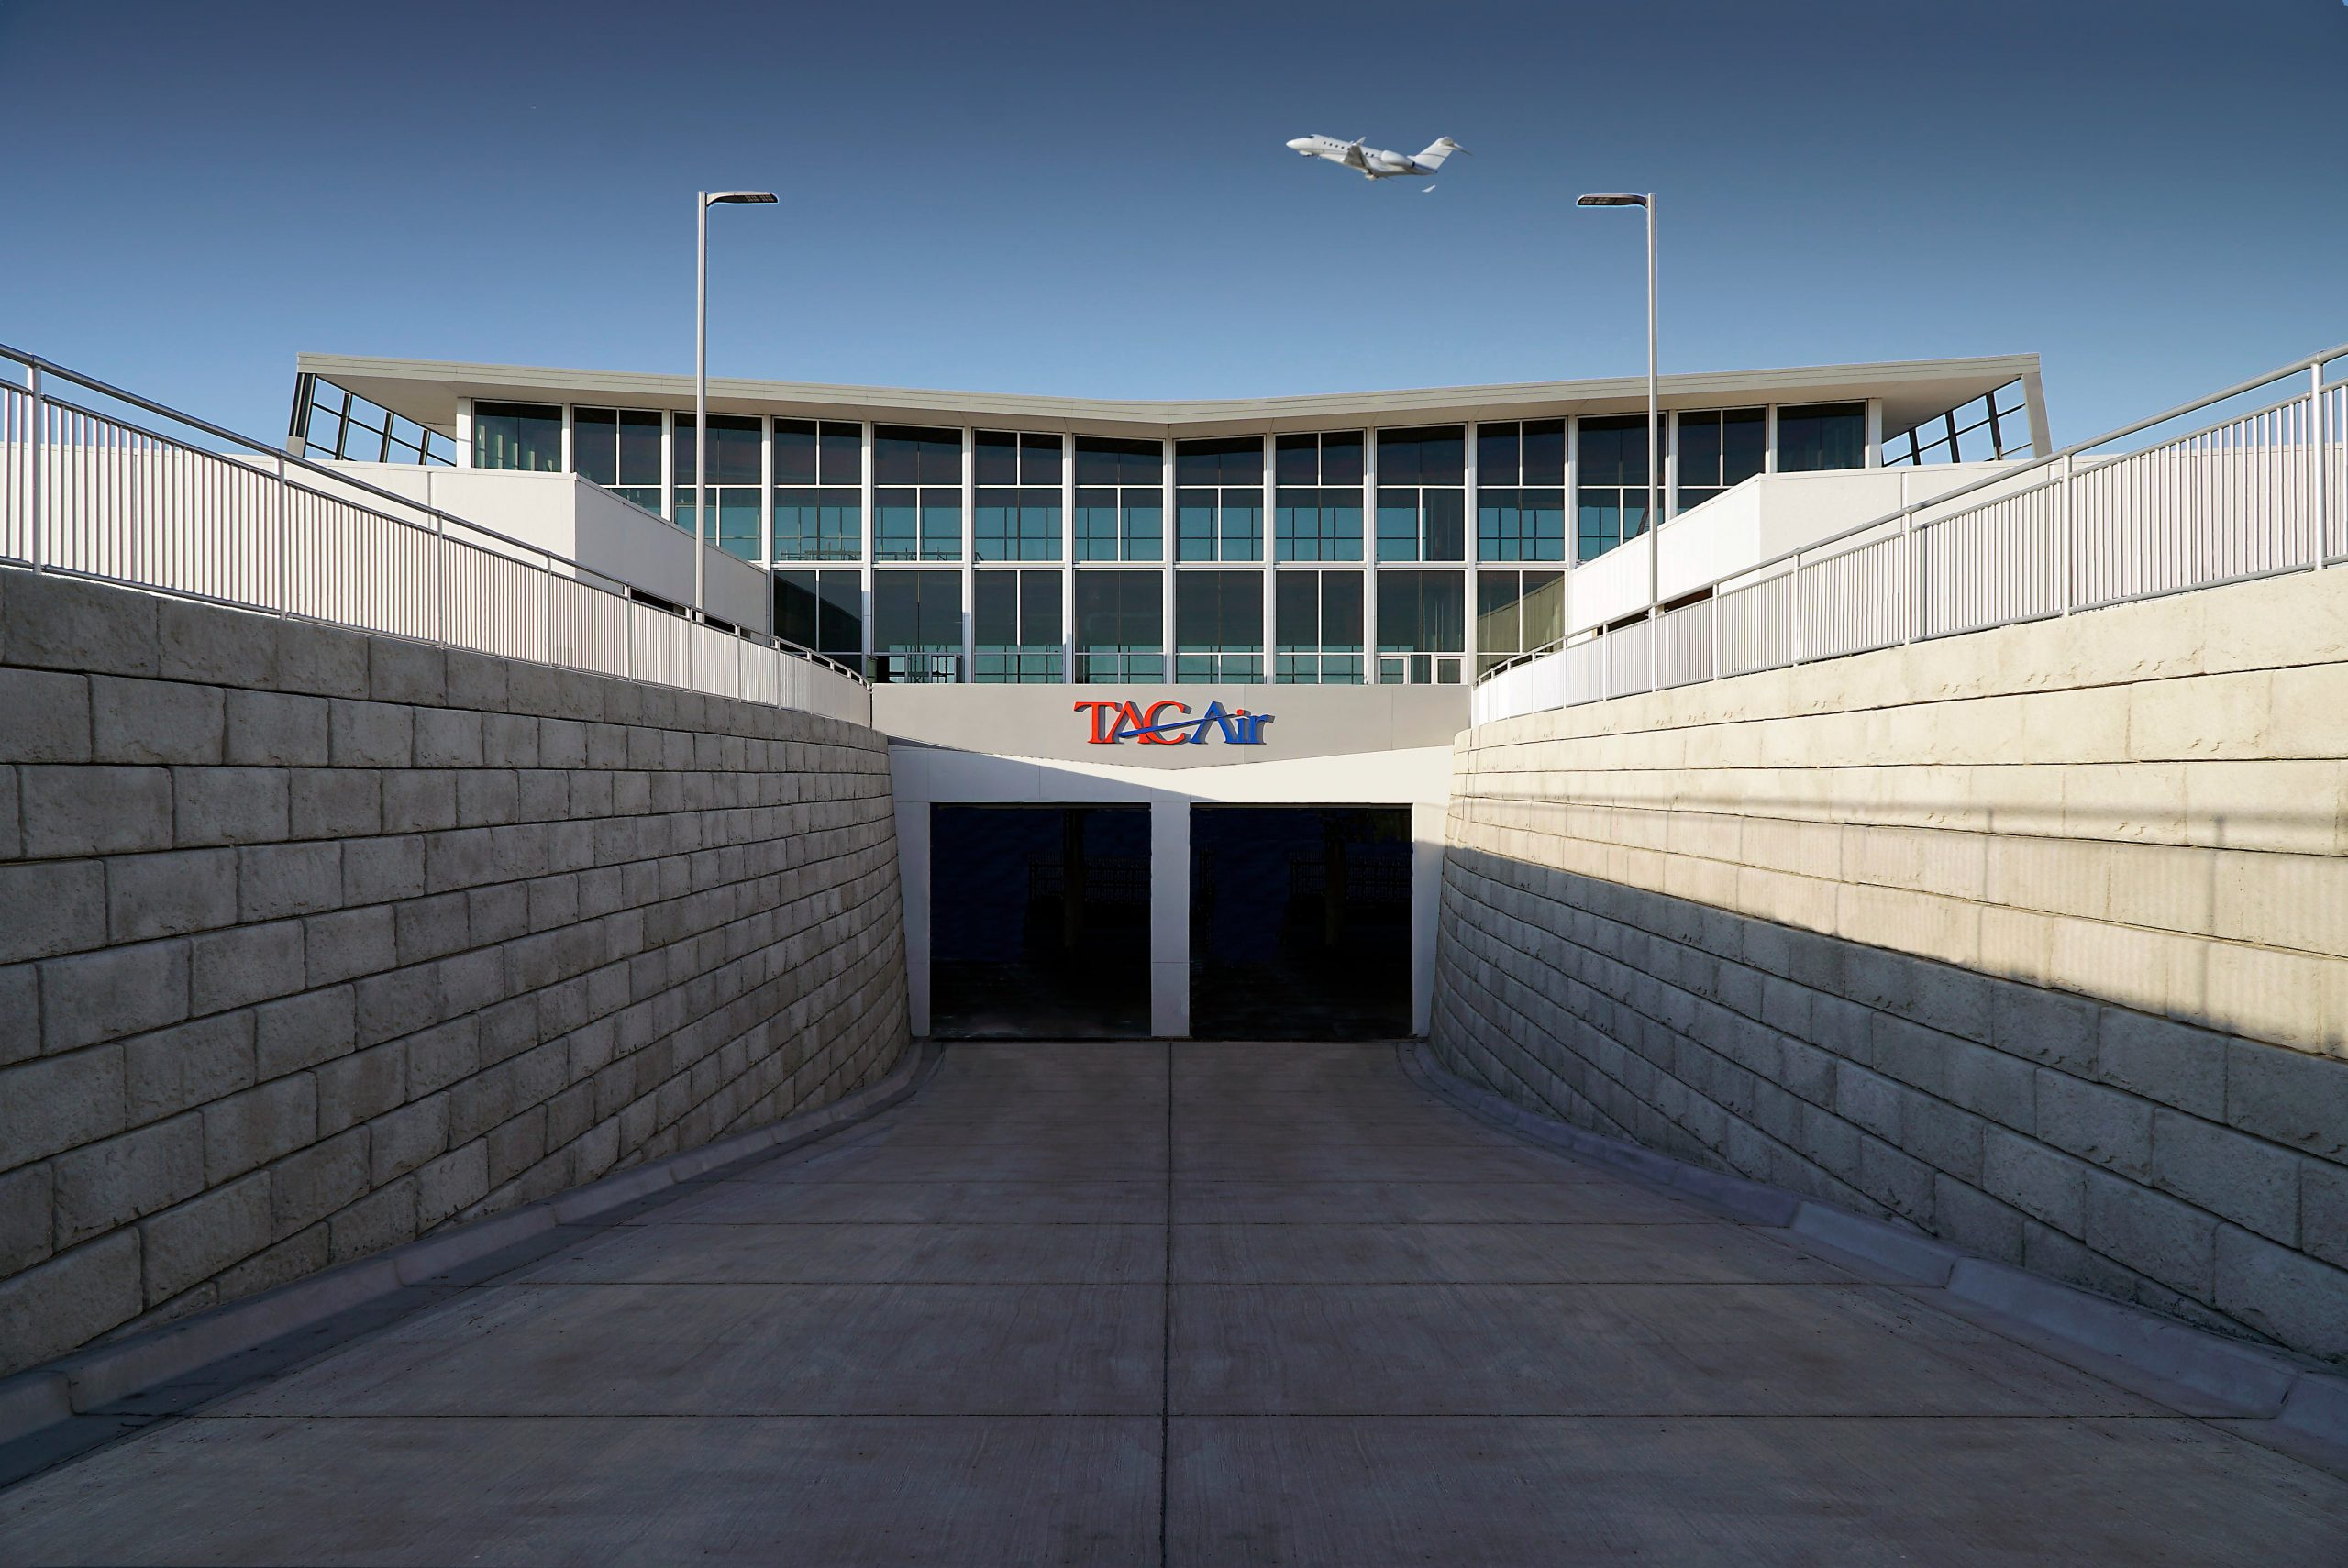 TAC Air Front entrance Tunnel 1-2020-min